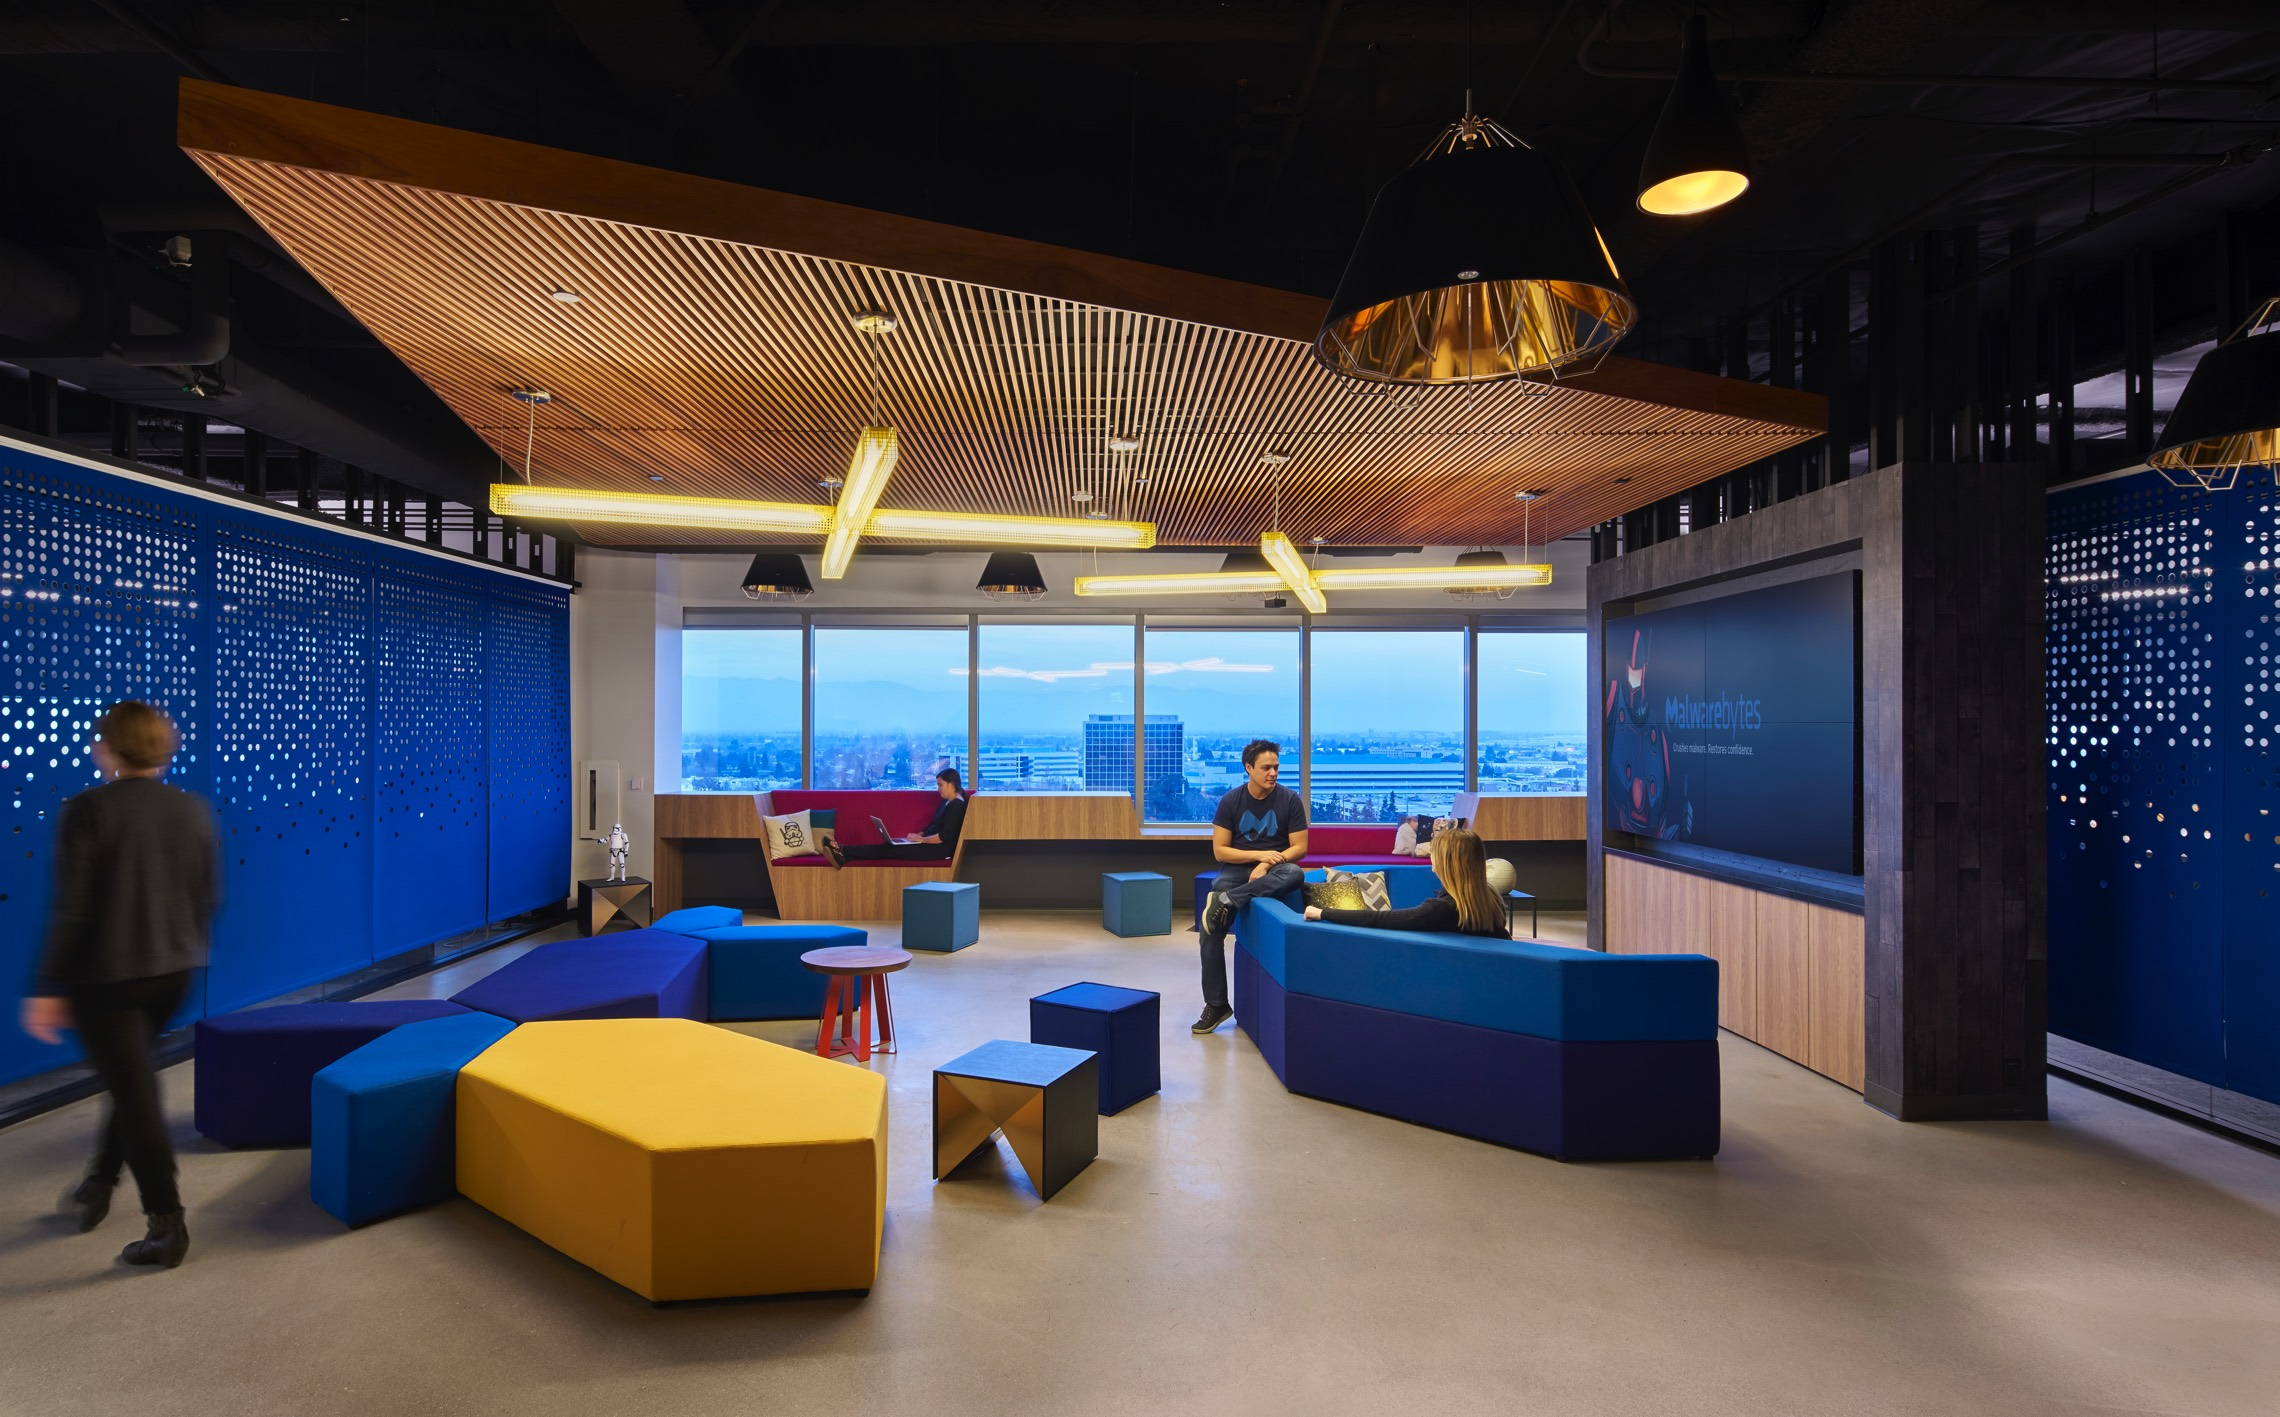 Malwarebytes, Santa Clara - Office Inspiration